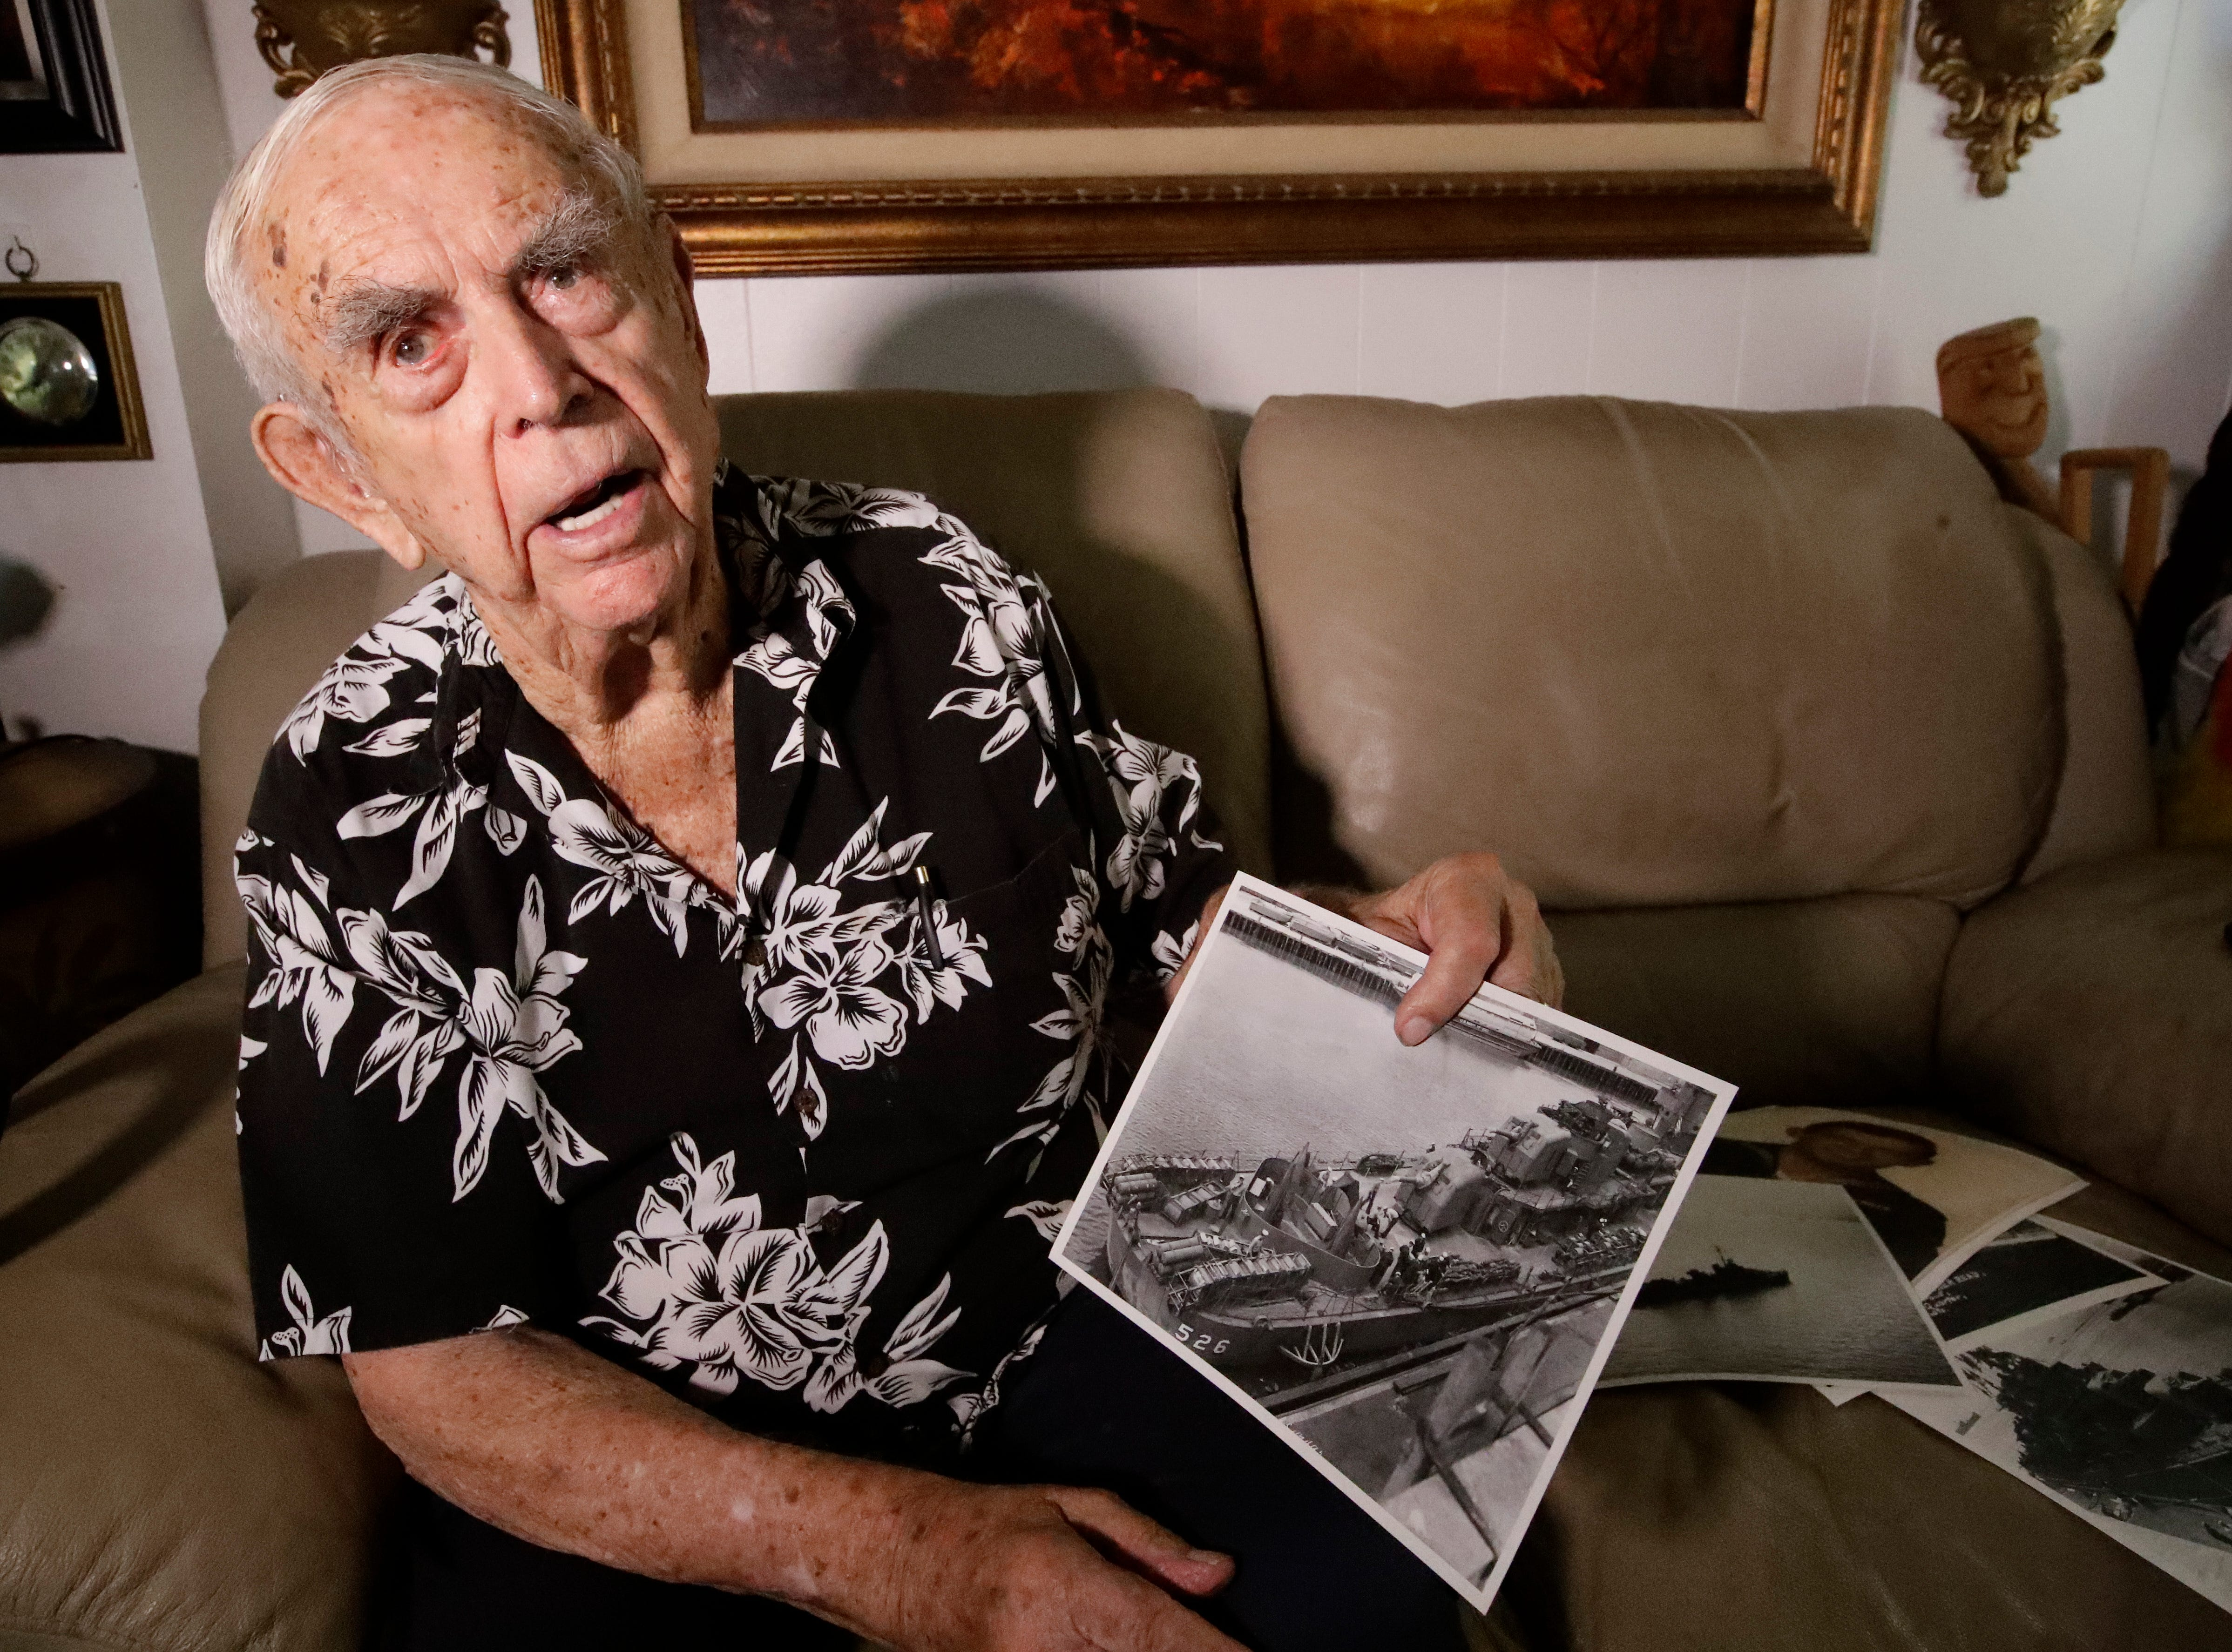 In this Tuesday, Aug. 14, 2018 photo, Daryl Weathers poses for a picture at his home in Seal Beach, Calif. Weathers was aboard the USS Abner Read after it hit a sea mine left by the Japanese after they abandoned Kiska Island in Alaska's Aleutian Islands in 1943. (AP Photo/Chris Carlson)